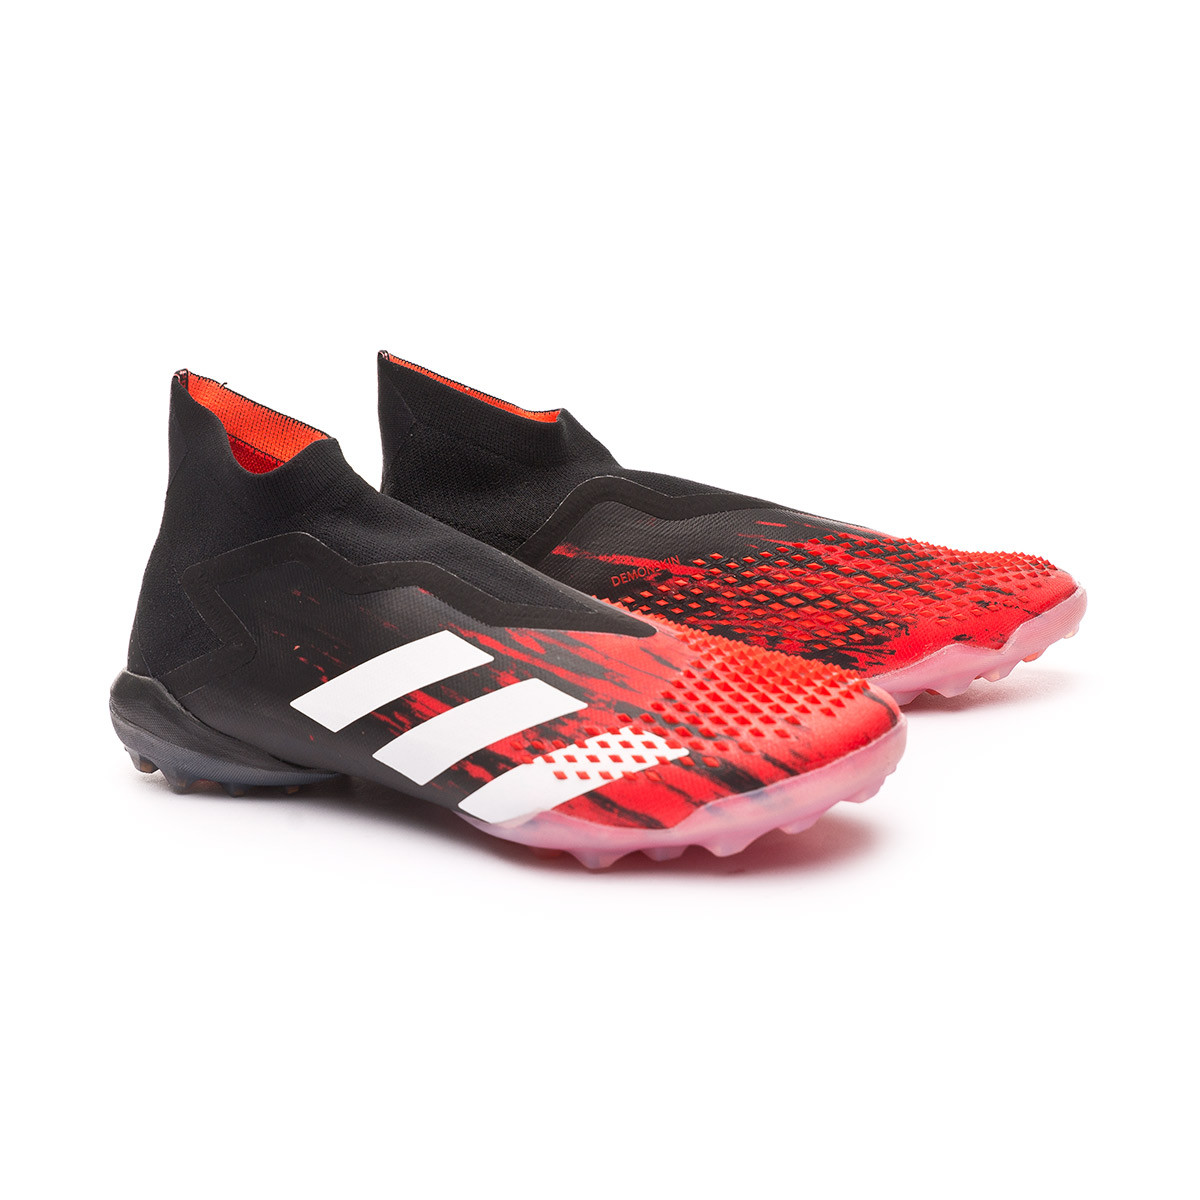 adidas Predator 20+ Turf Football Boot